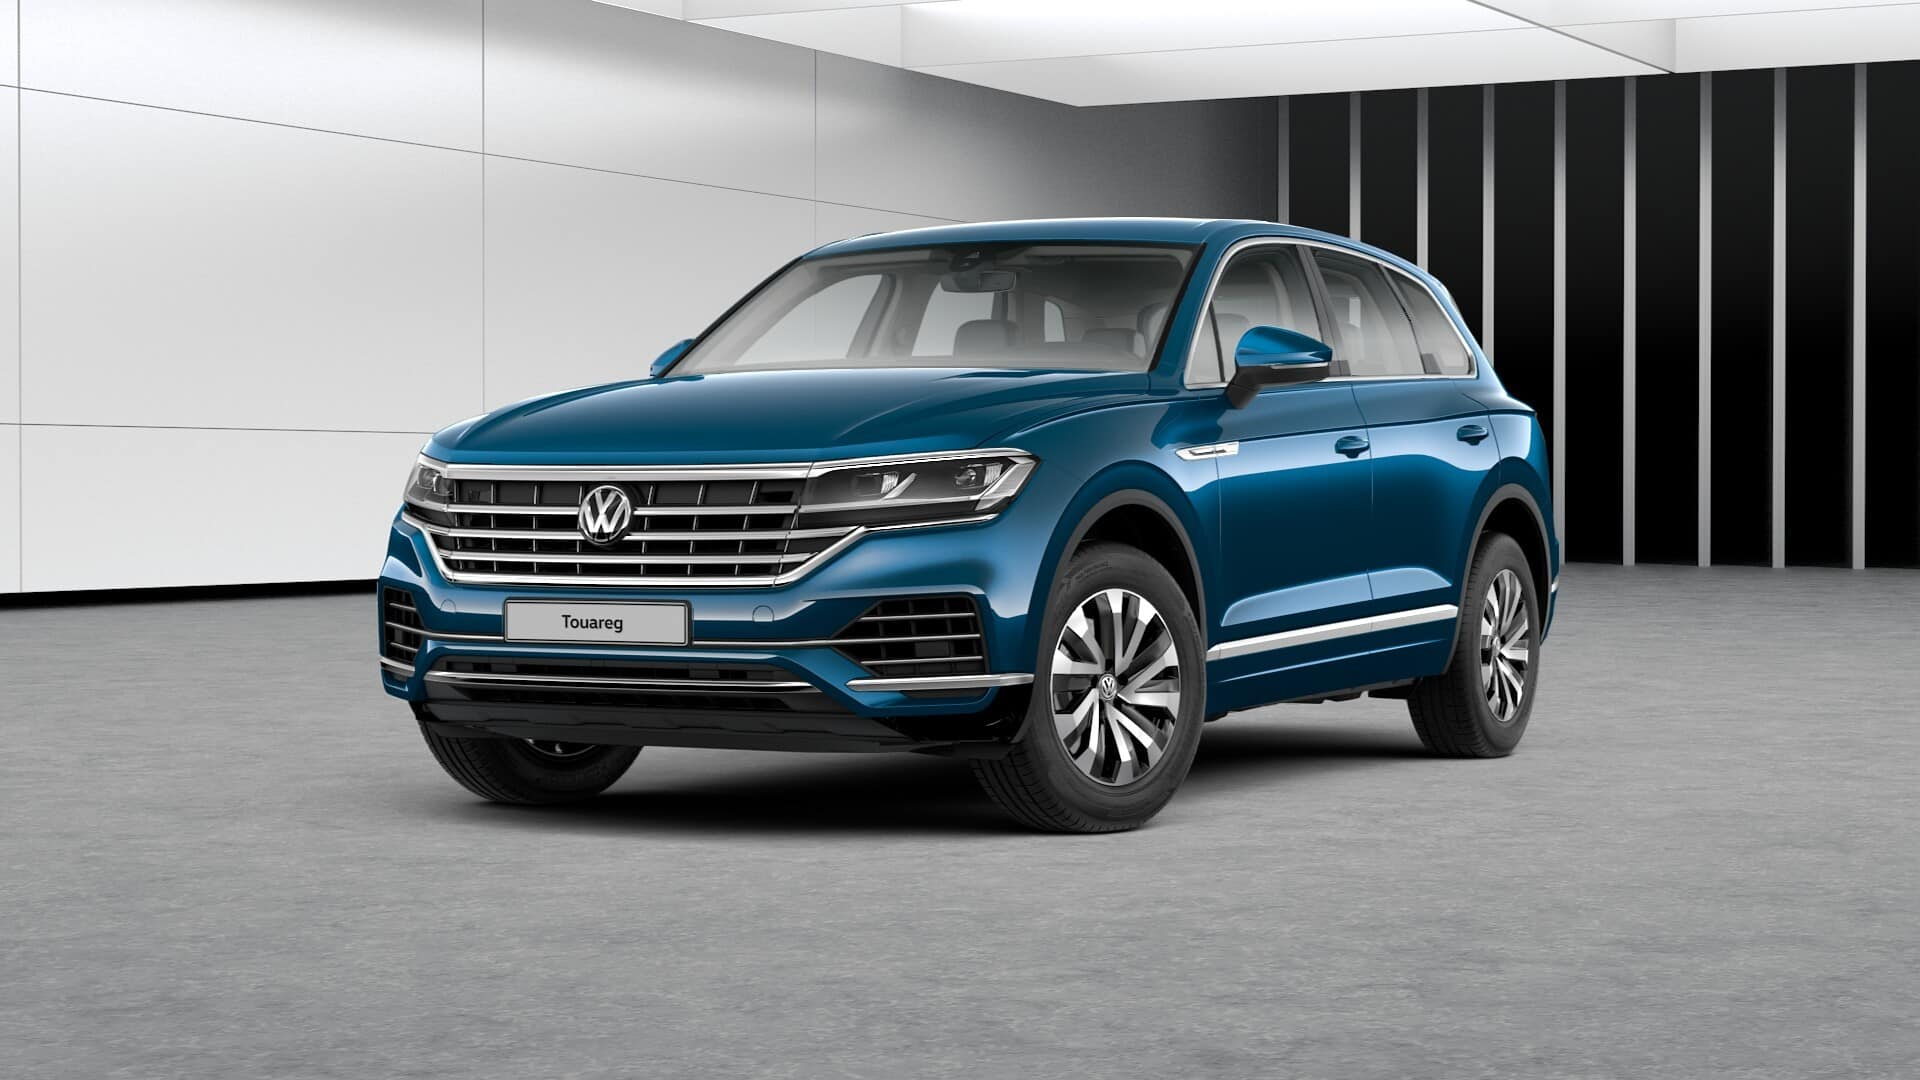 el nuevo volkswagen touareg recibe la versi n de acceso. Black Bedroom Furniture Sets. Home Design Ideas